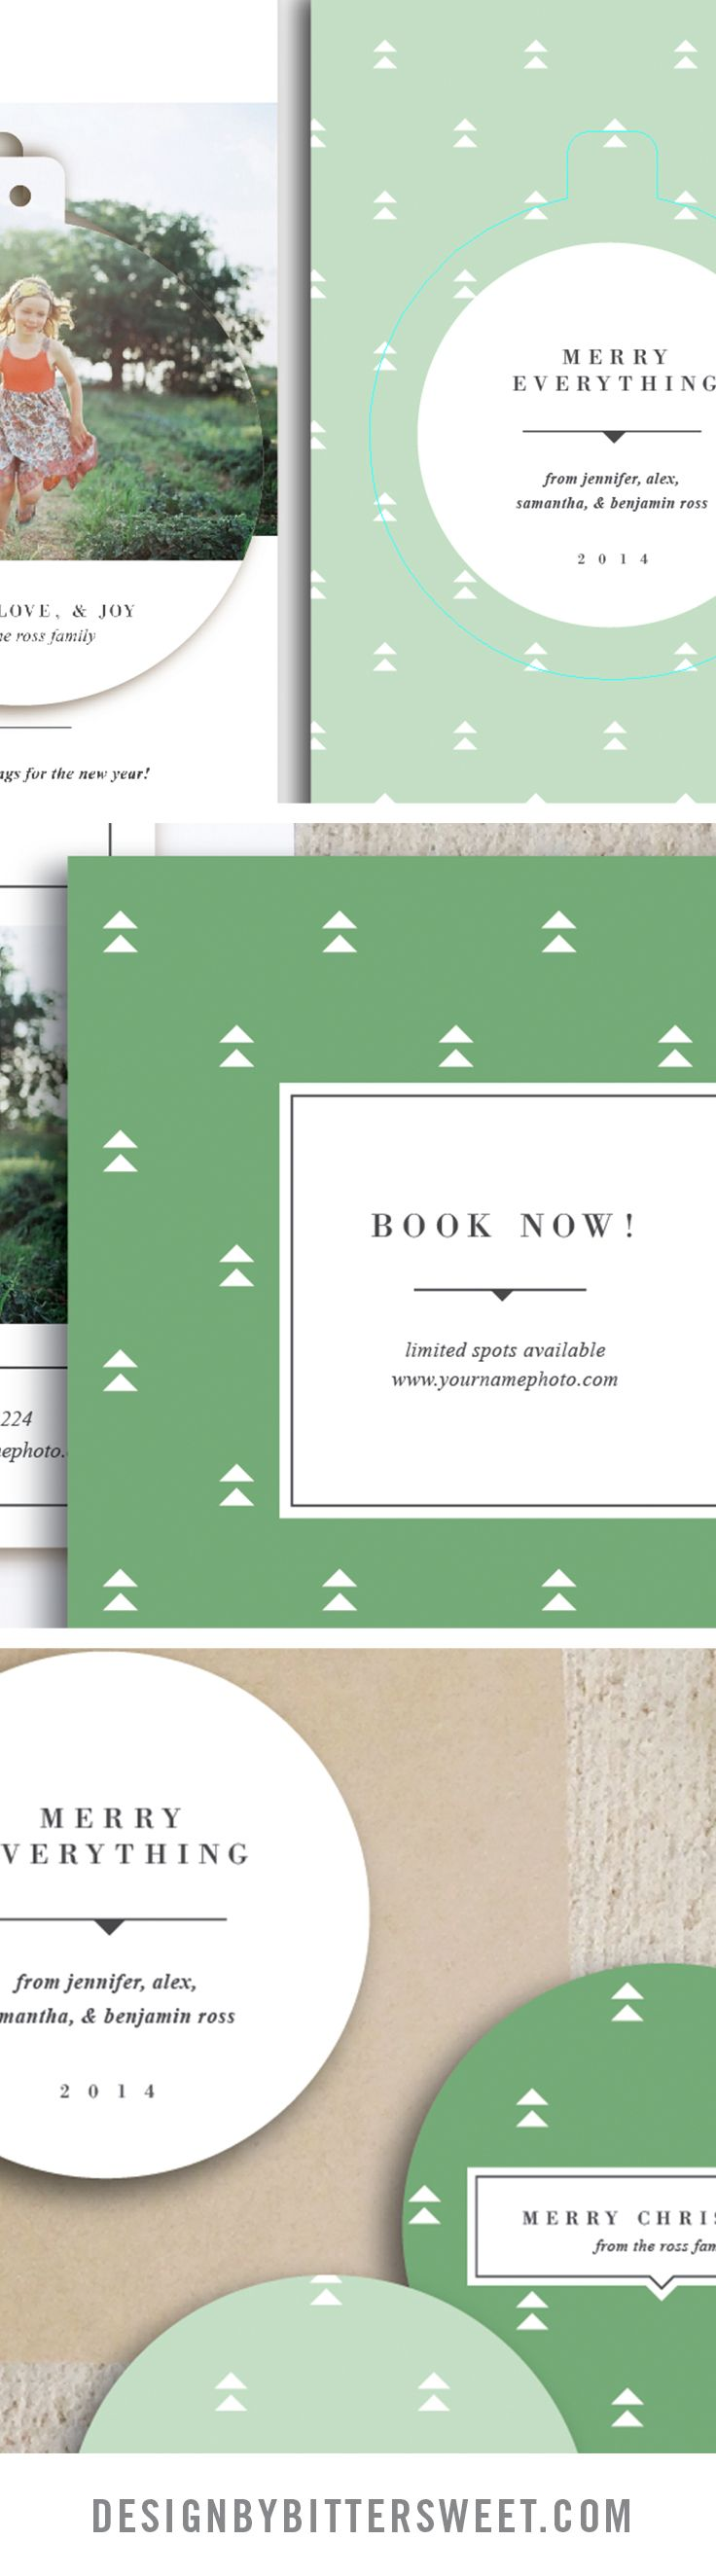 Holiday mini session templates. Christmas card designs for professional photographers. images courtesy of @colecollective